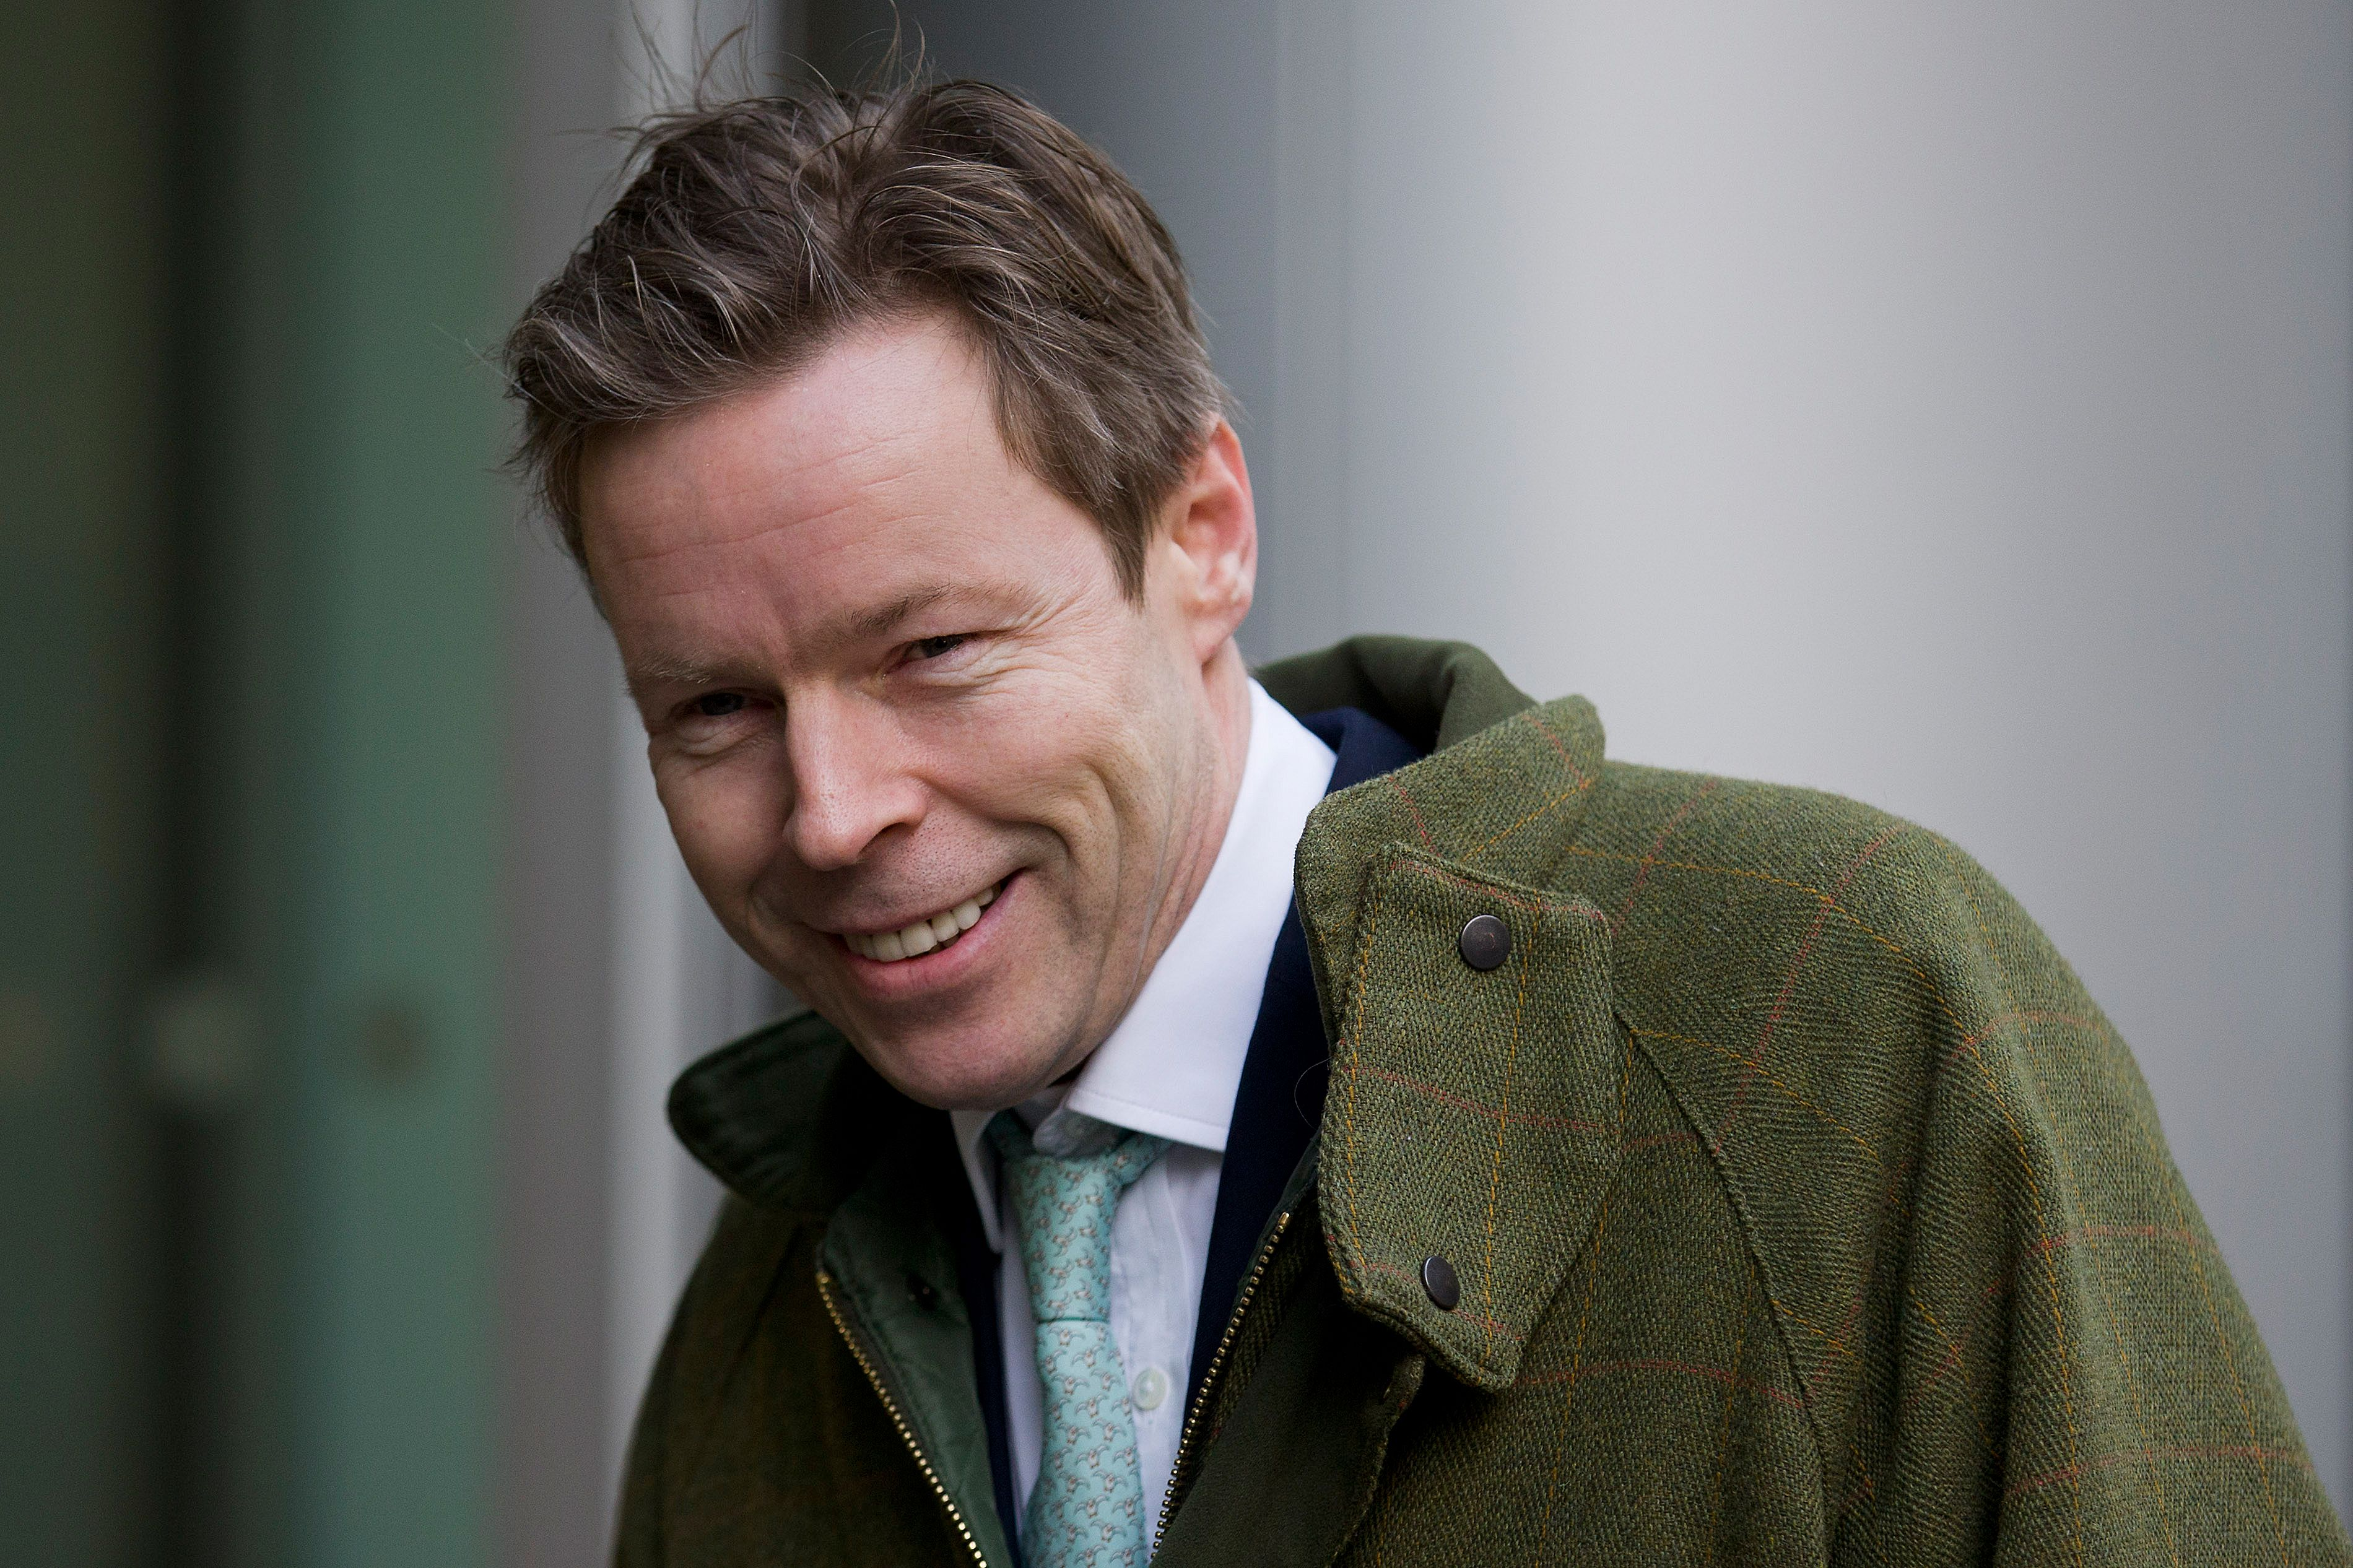 George Bingham, the only son of the infamous British aristocrat Lord Lucan, arrives at the High Court in central London on February 3, 2016.